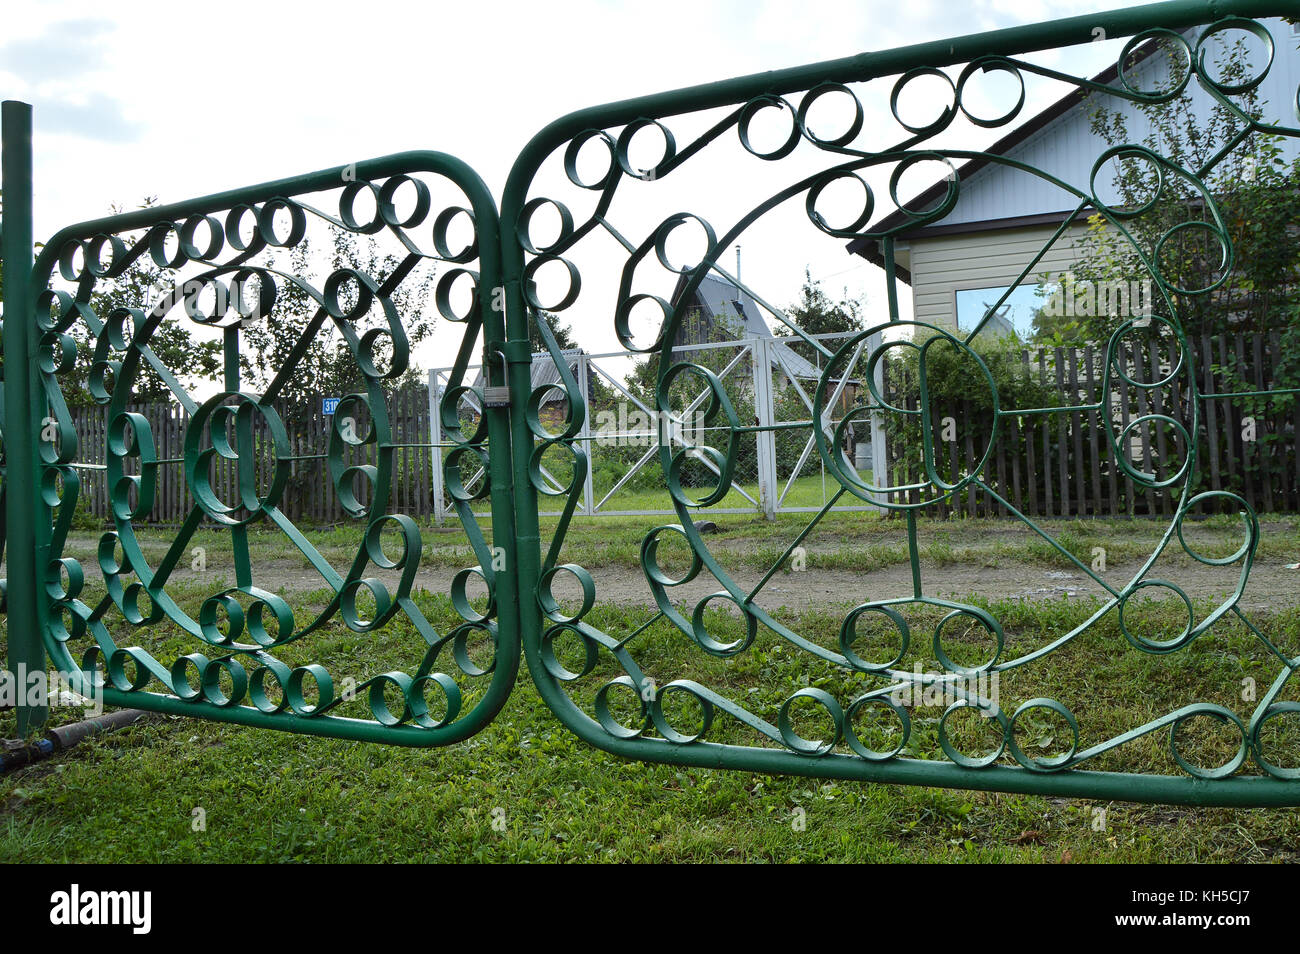 old metal fence garden stockfotos old metal fence garden bilder alamy. Black Bedroom Furniture Sets. Home Design Ideas